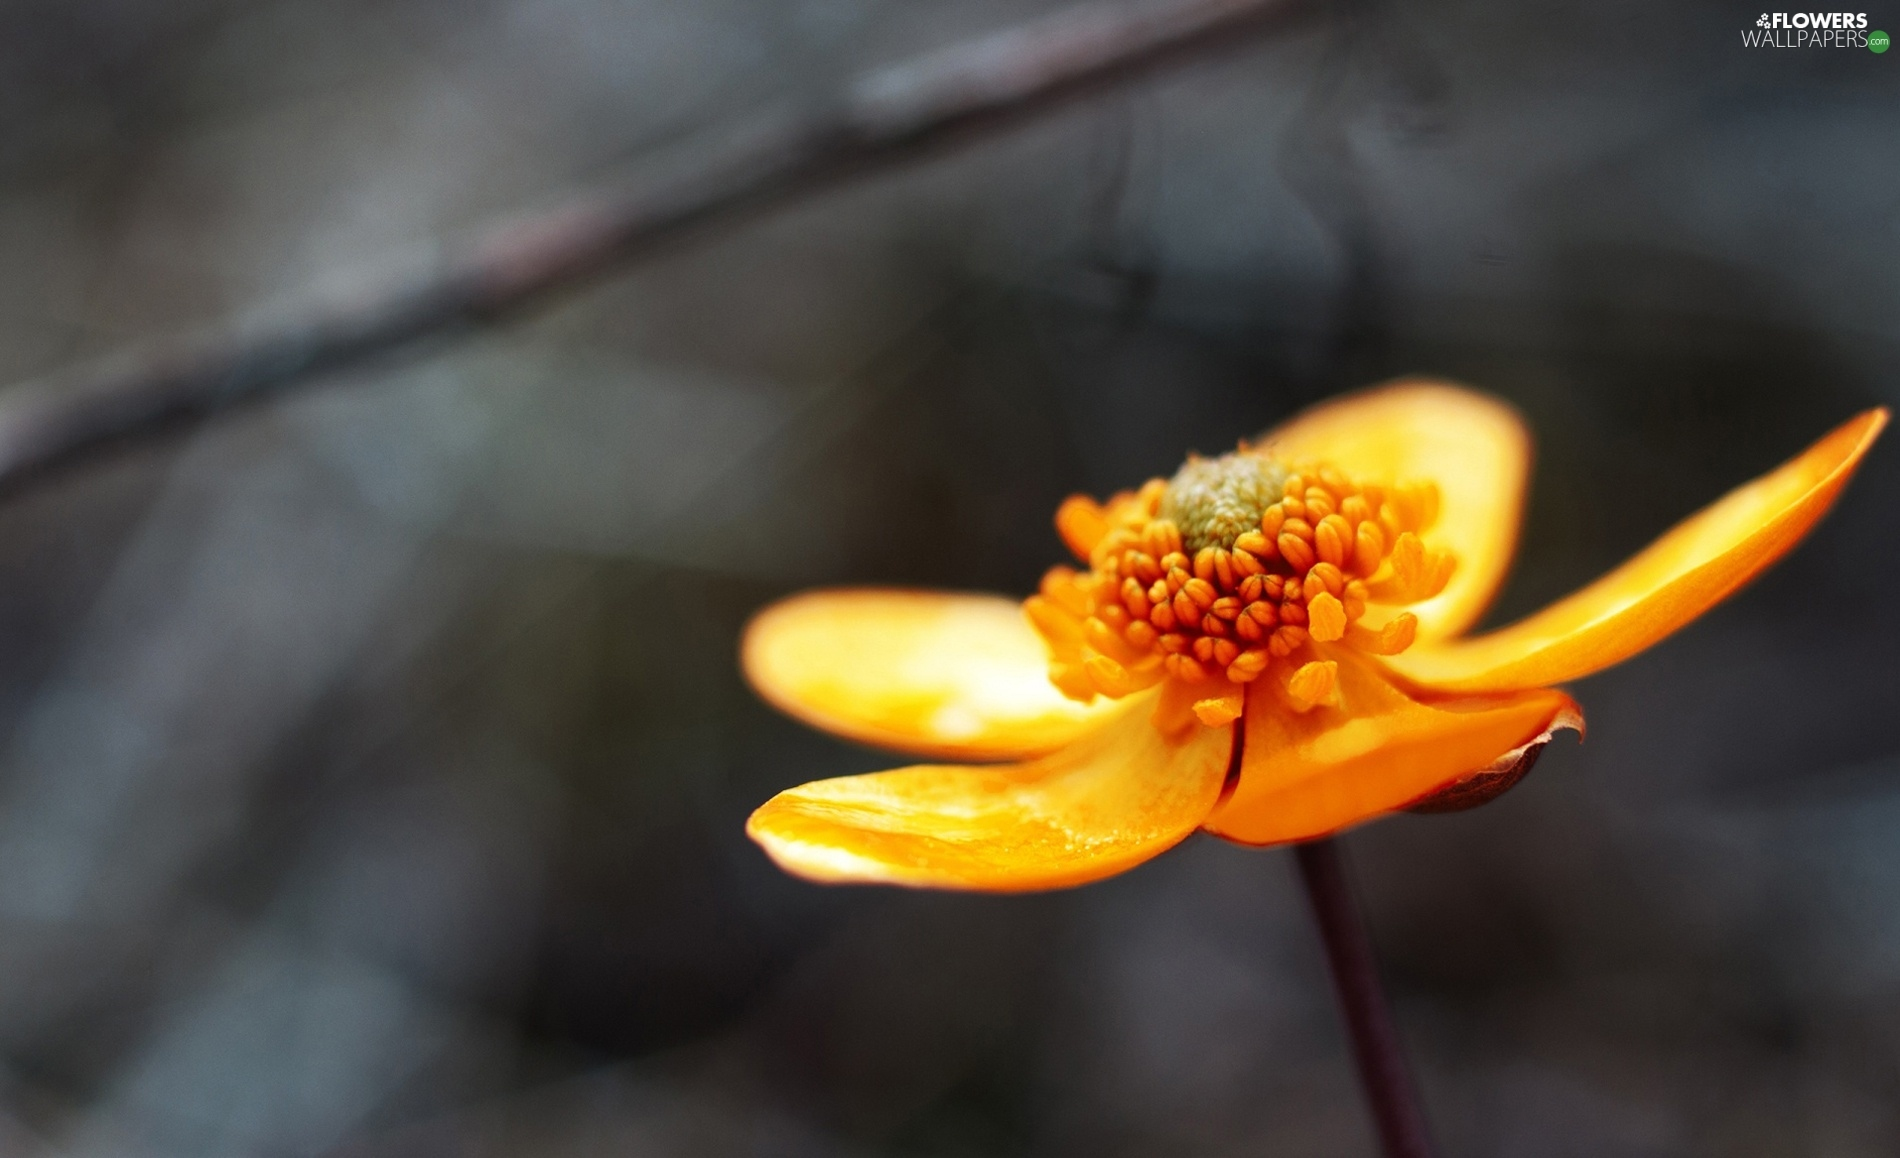 buttercup, Orange, Flower